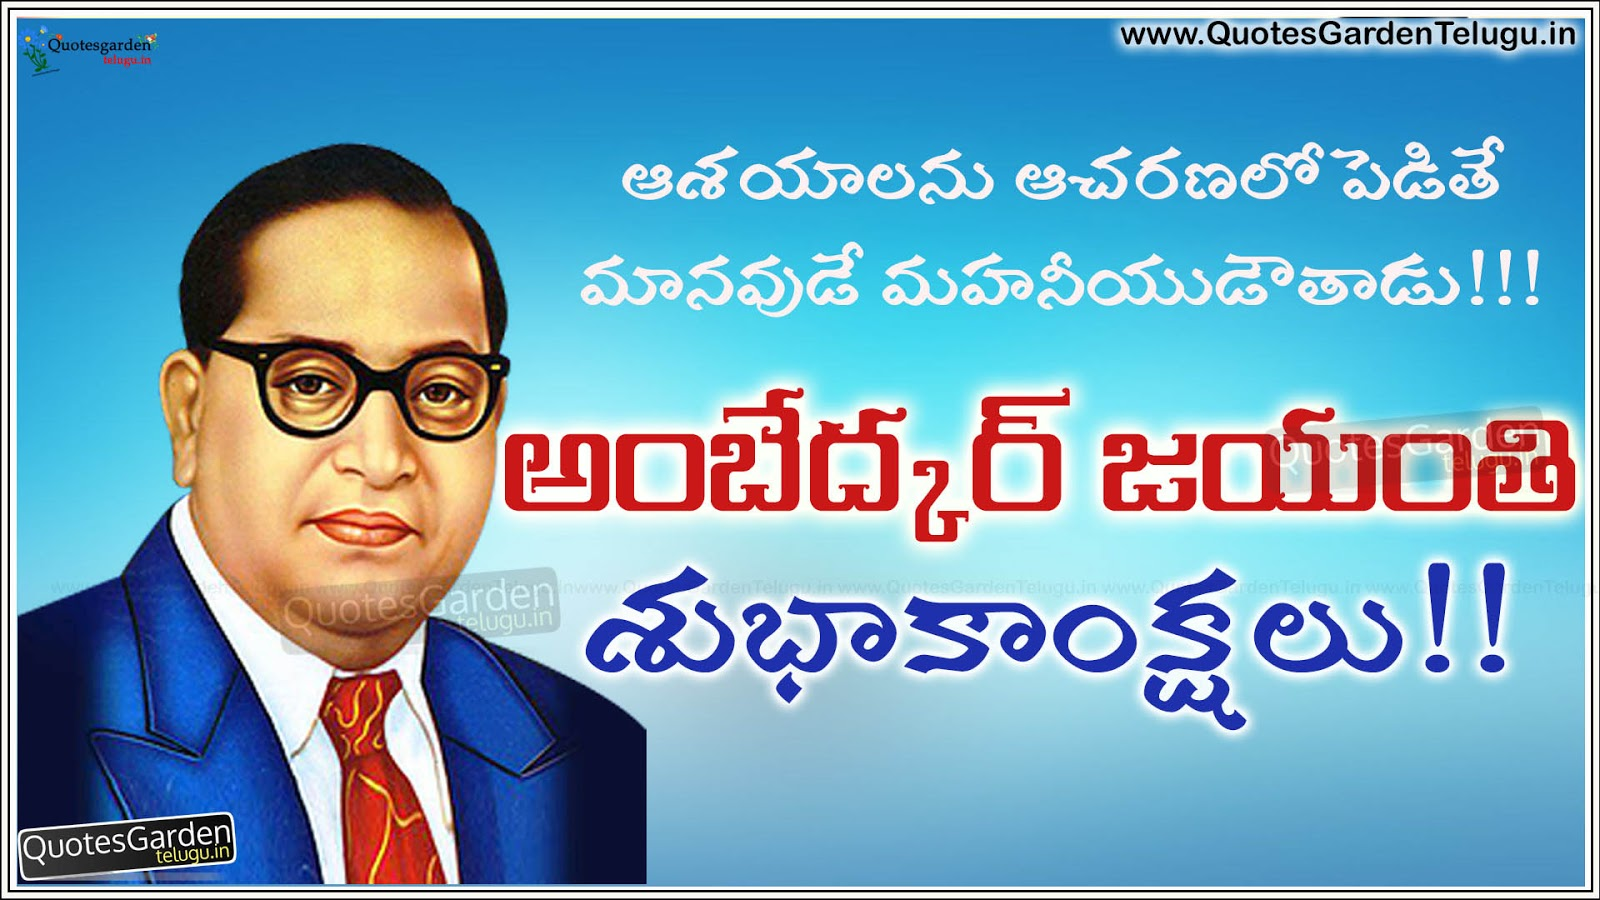 Beautiful Heart Touching Quotes Wallpapers Ambedkar Jayanthi Telugu Quotations Greetings Quotes